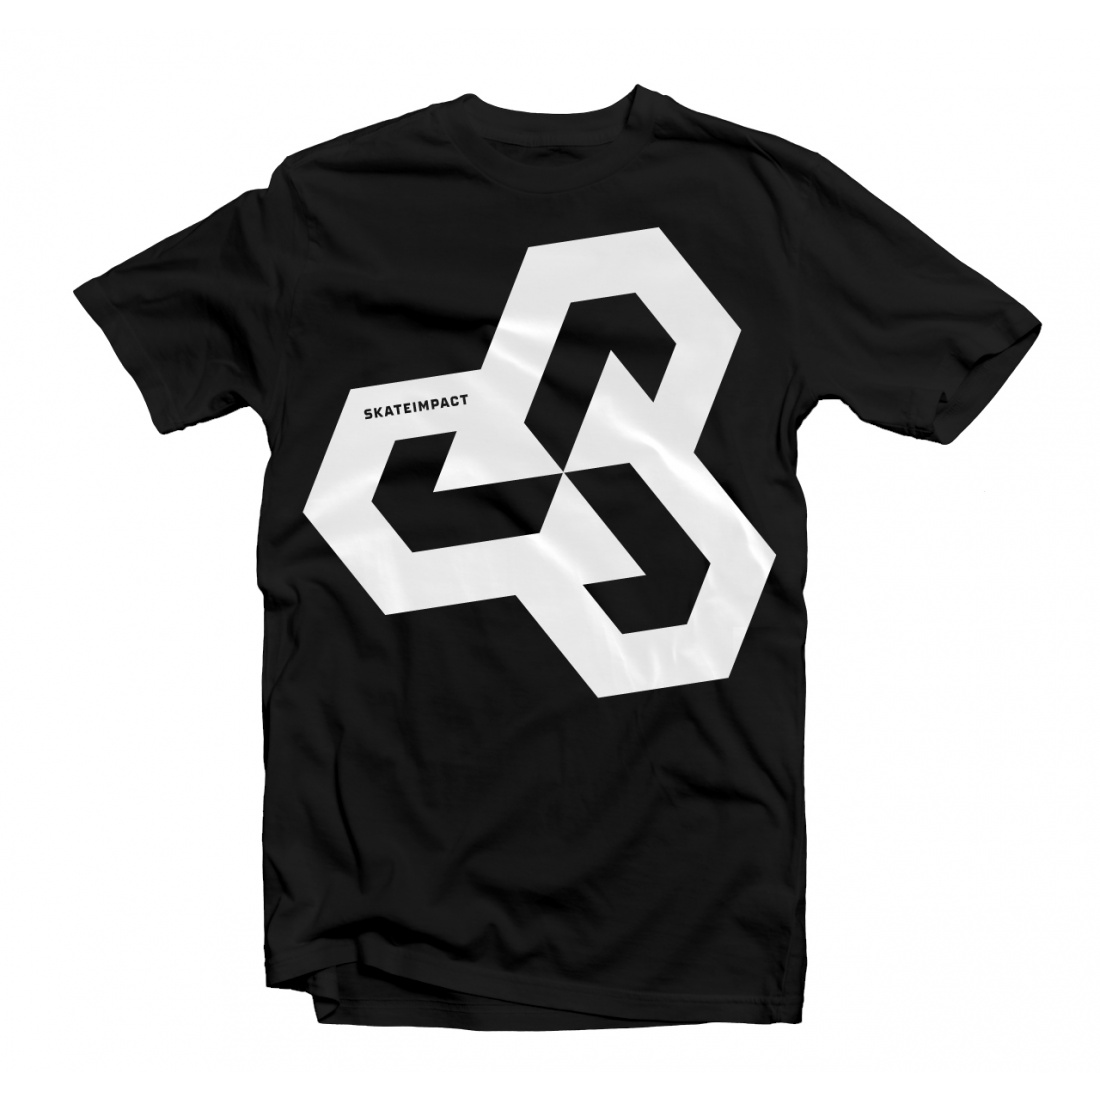 Skateimpact Giant Icon White on Black Tshirt